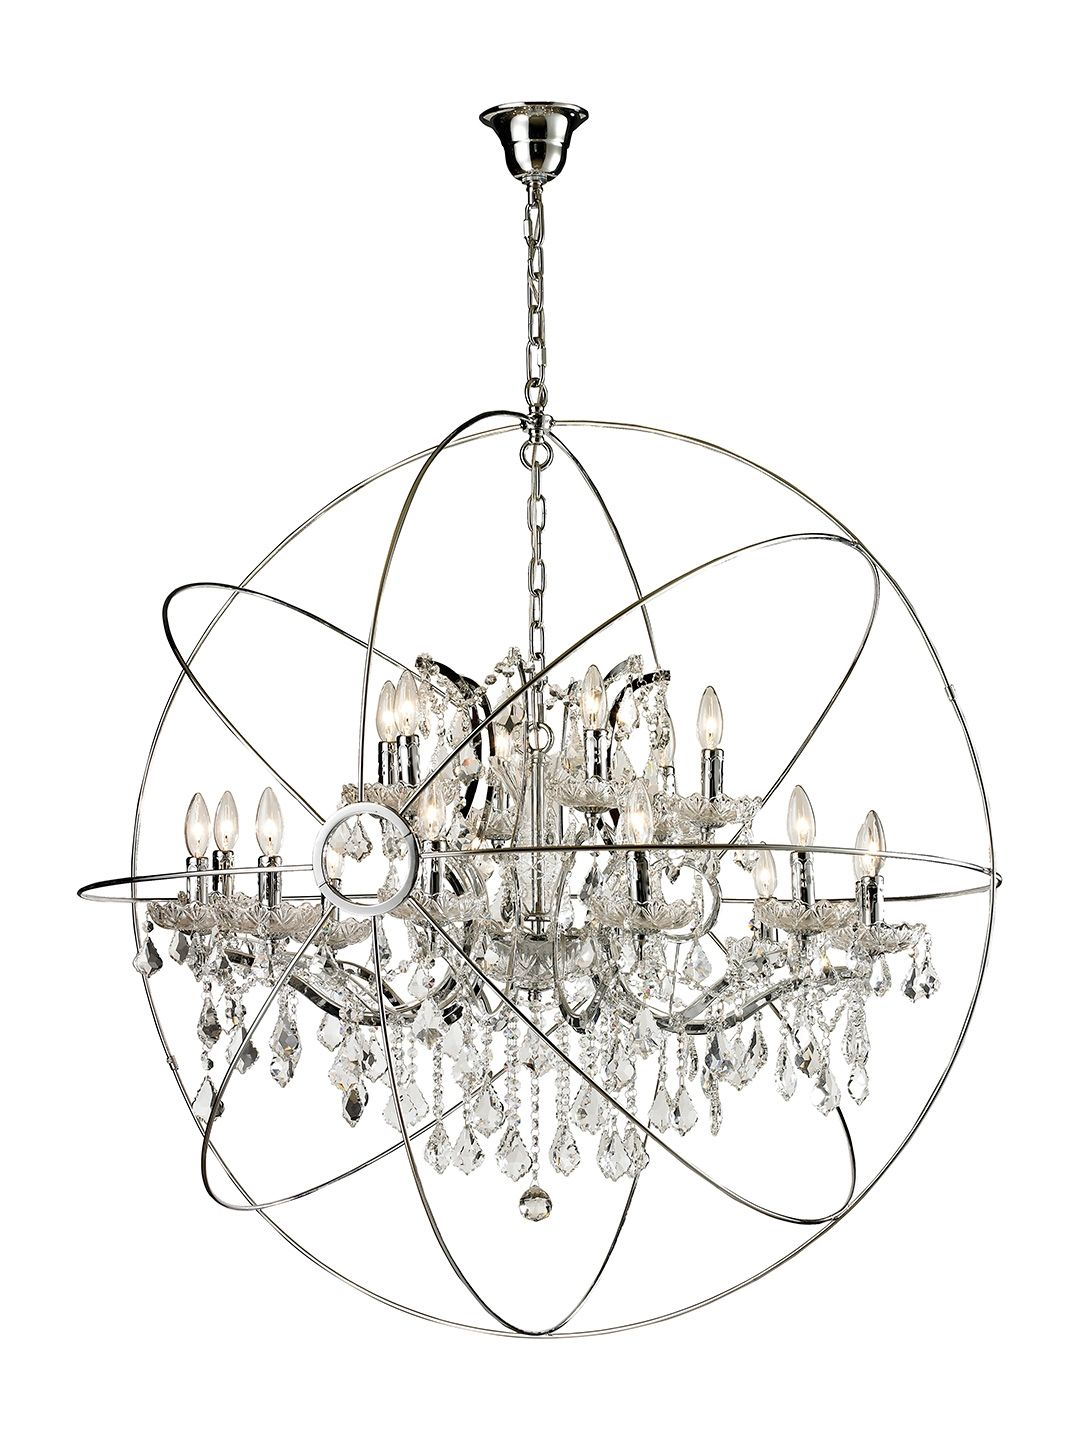 Large orb chandelier by bois et cuir by cdi intl at gilt